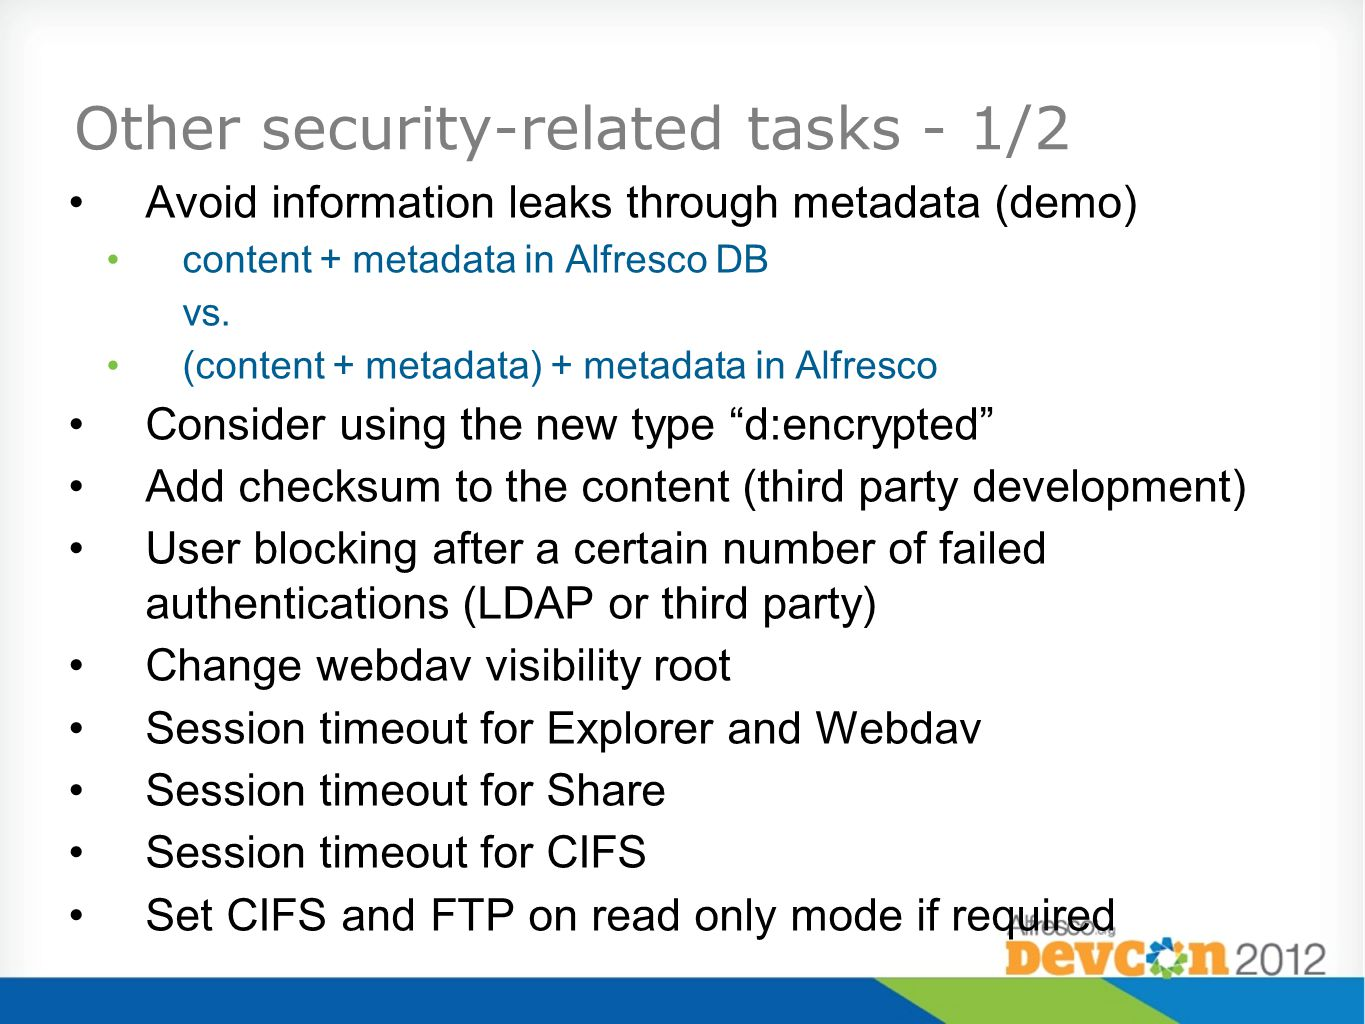 Other security-related tasks - 1/2